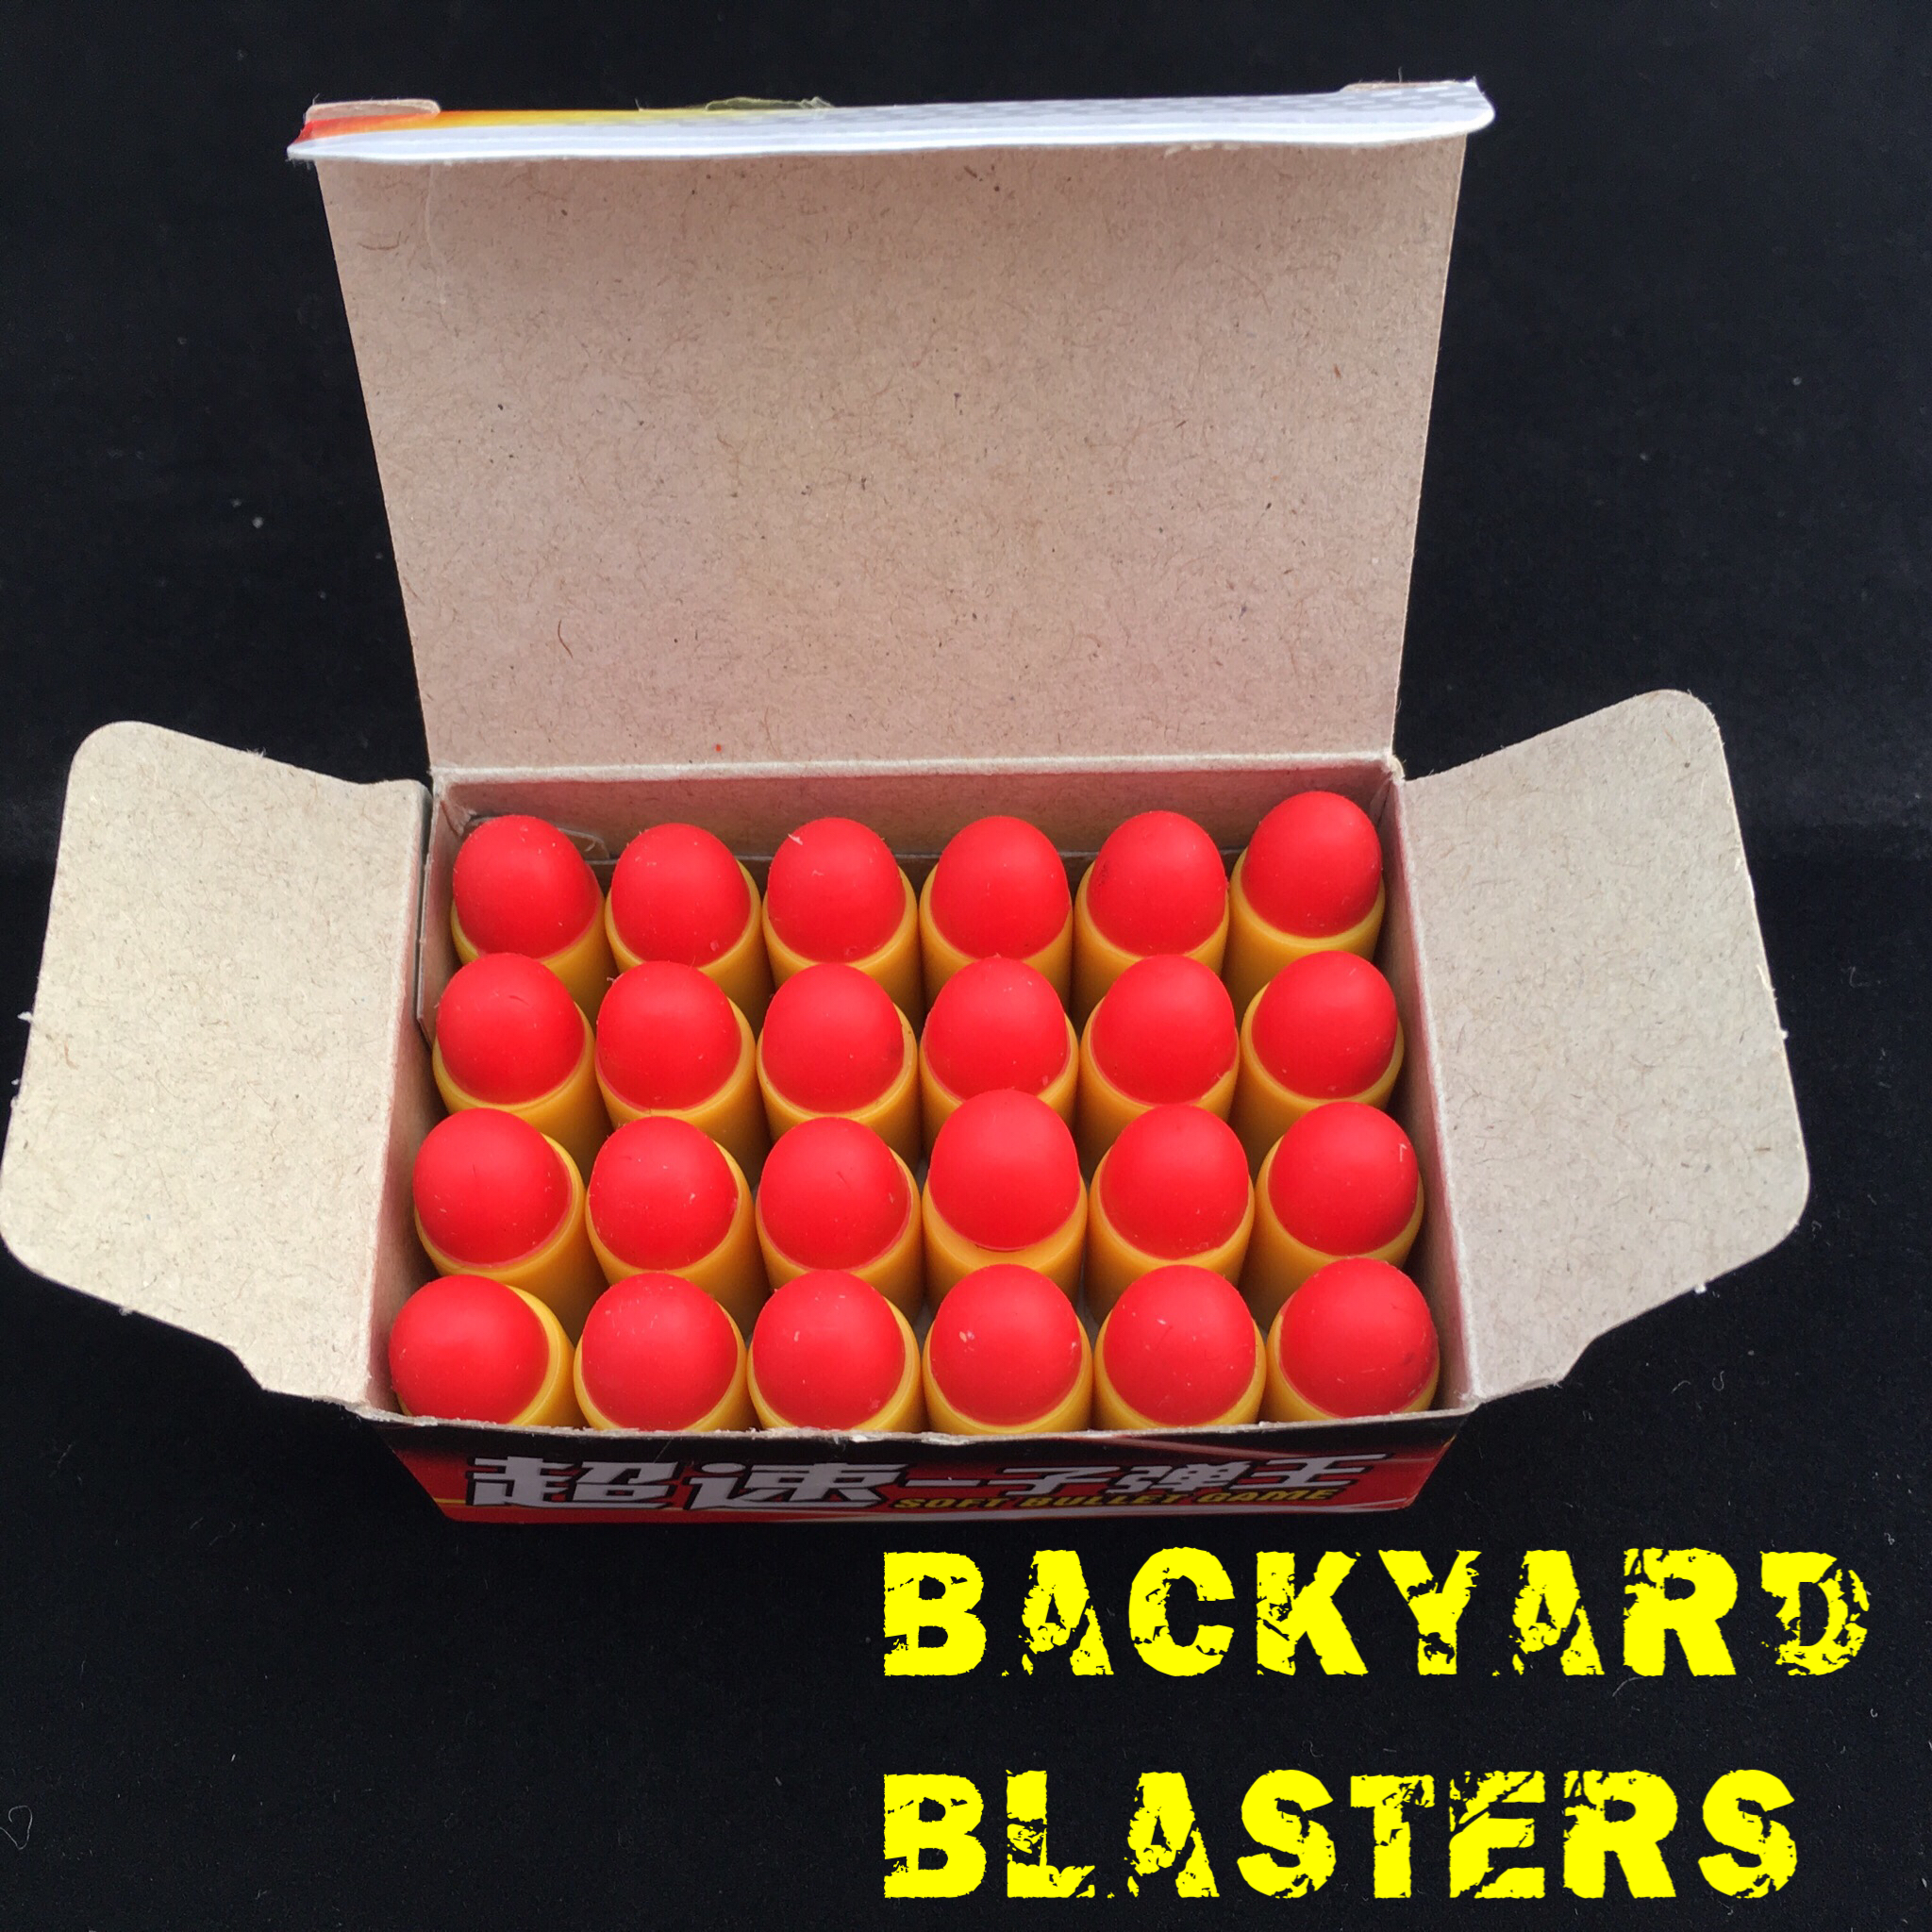 lock n load with this 9mm rubber bullet ammo for the mauser c96